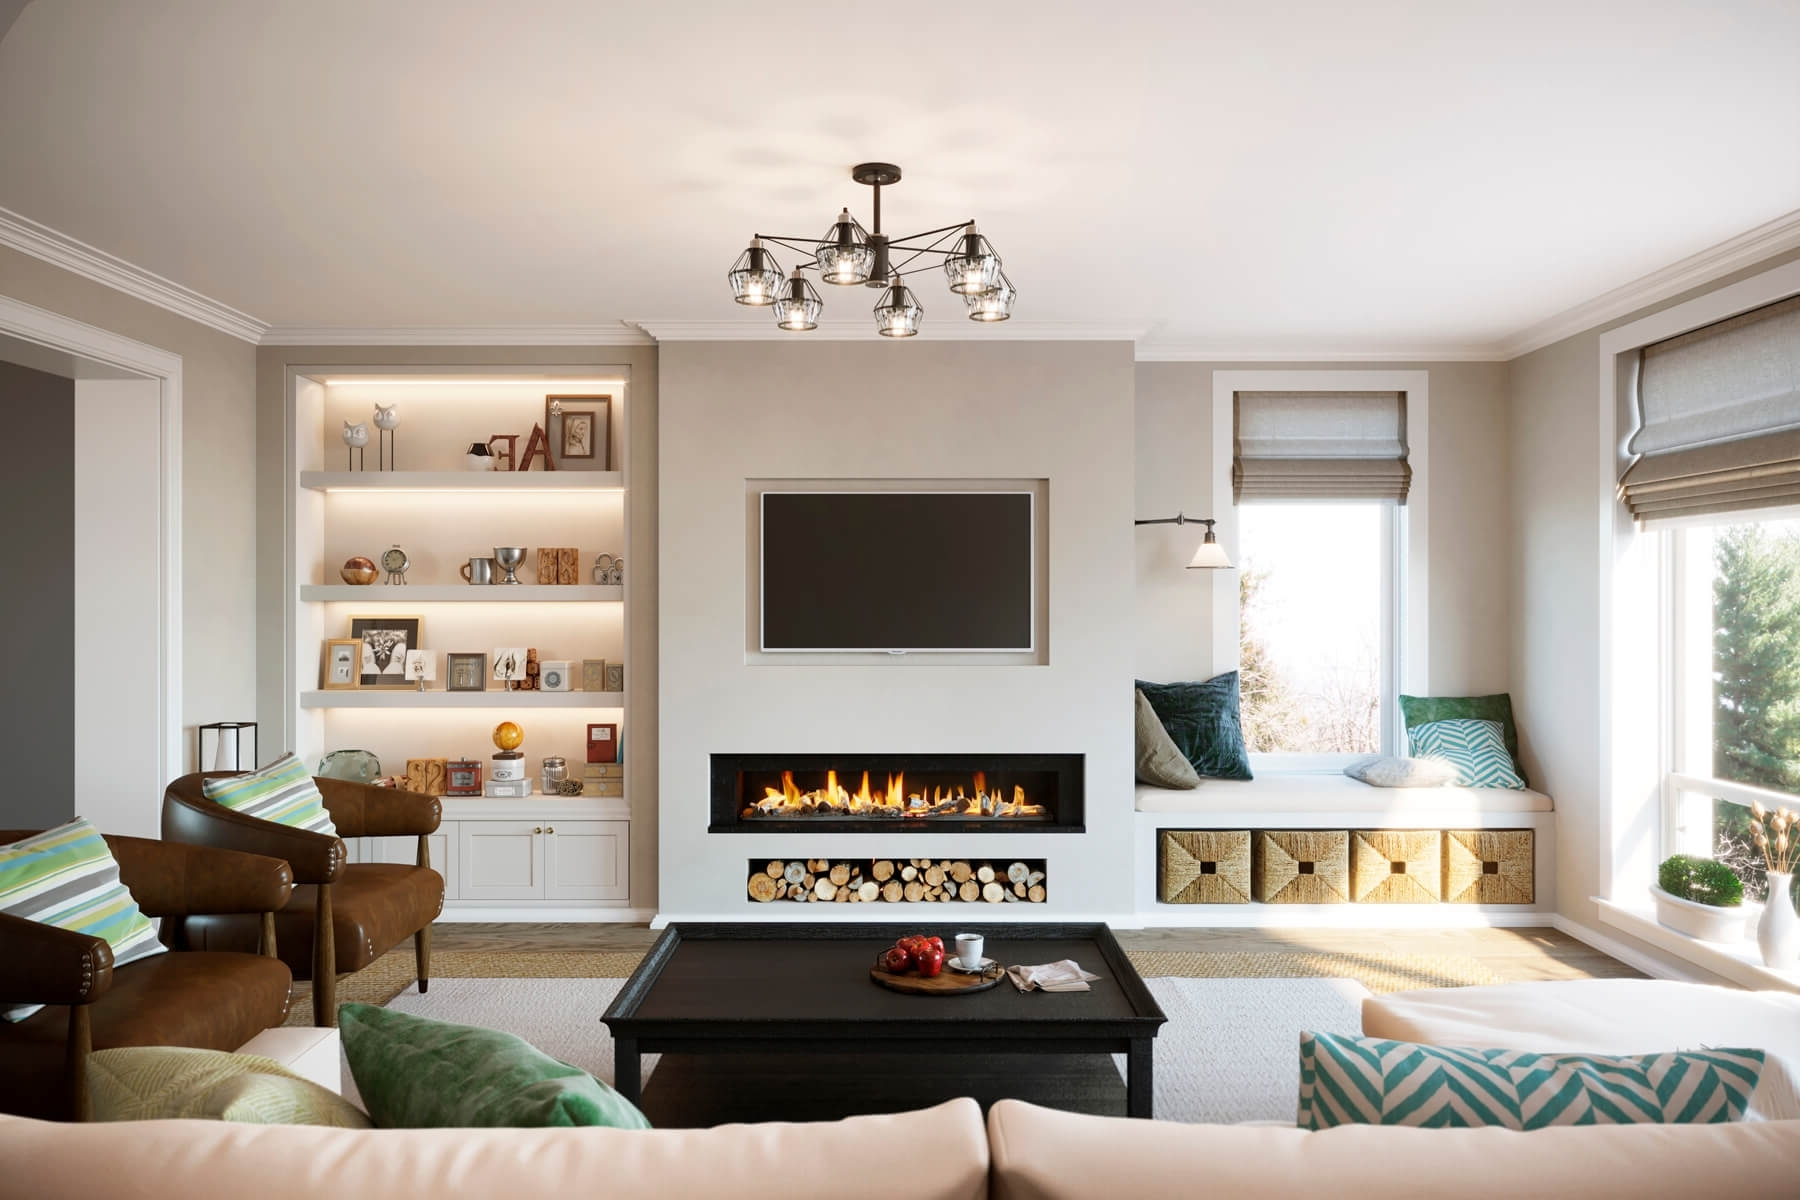 1 False Breast With Granite Inlays, Log Store And Tv Recess 10+ Small Living Room With Chimney Breast Inspirations